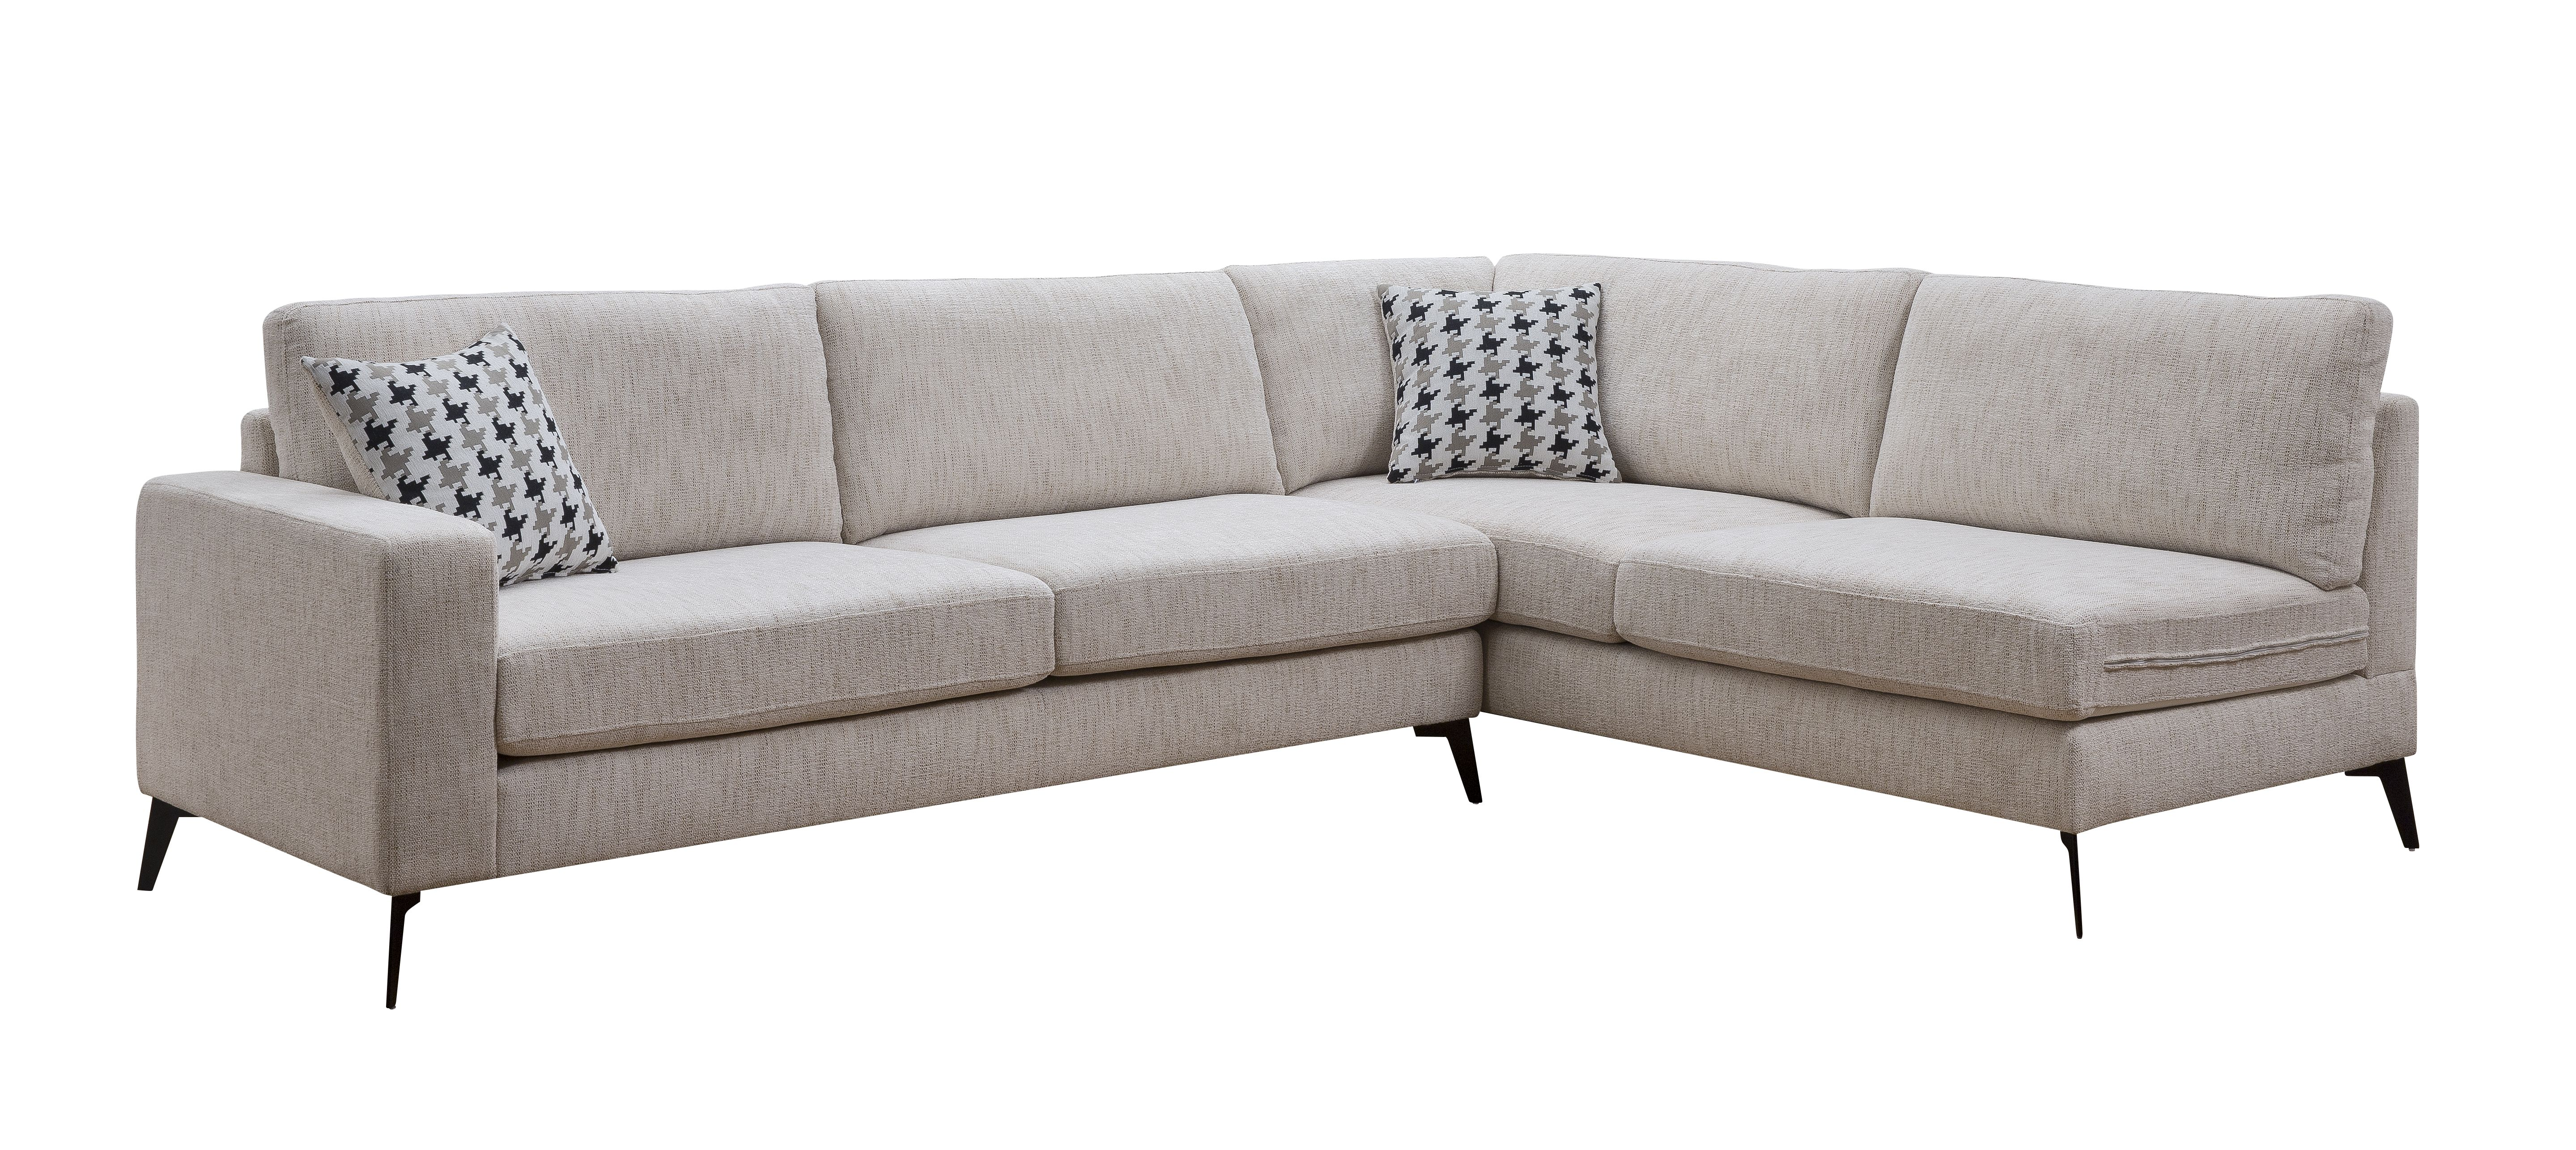 ACME Crocosmia Sectional Sofa With 2 Pillows In Beige Chenille